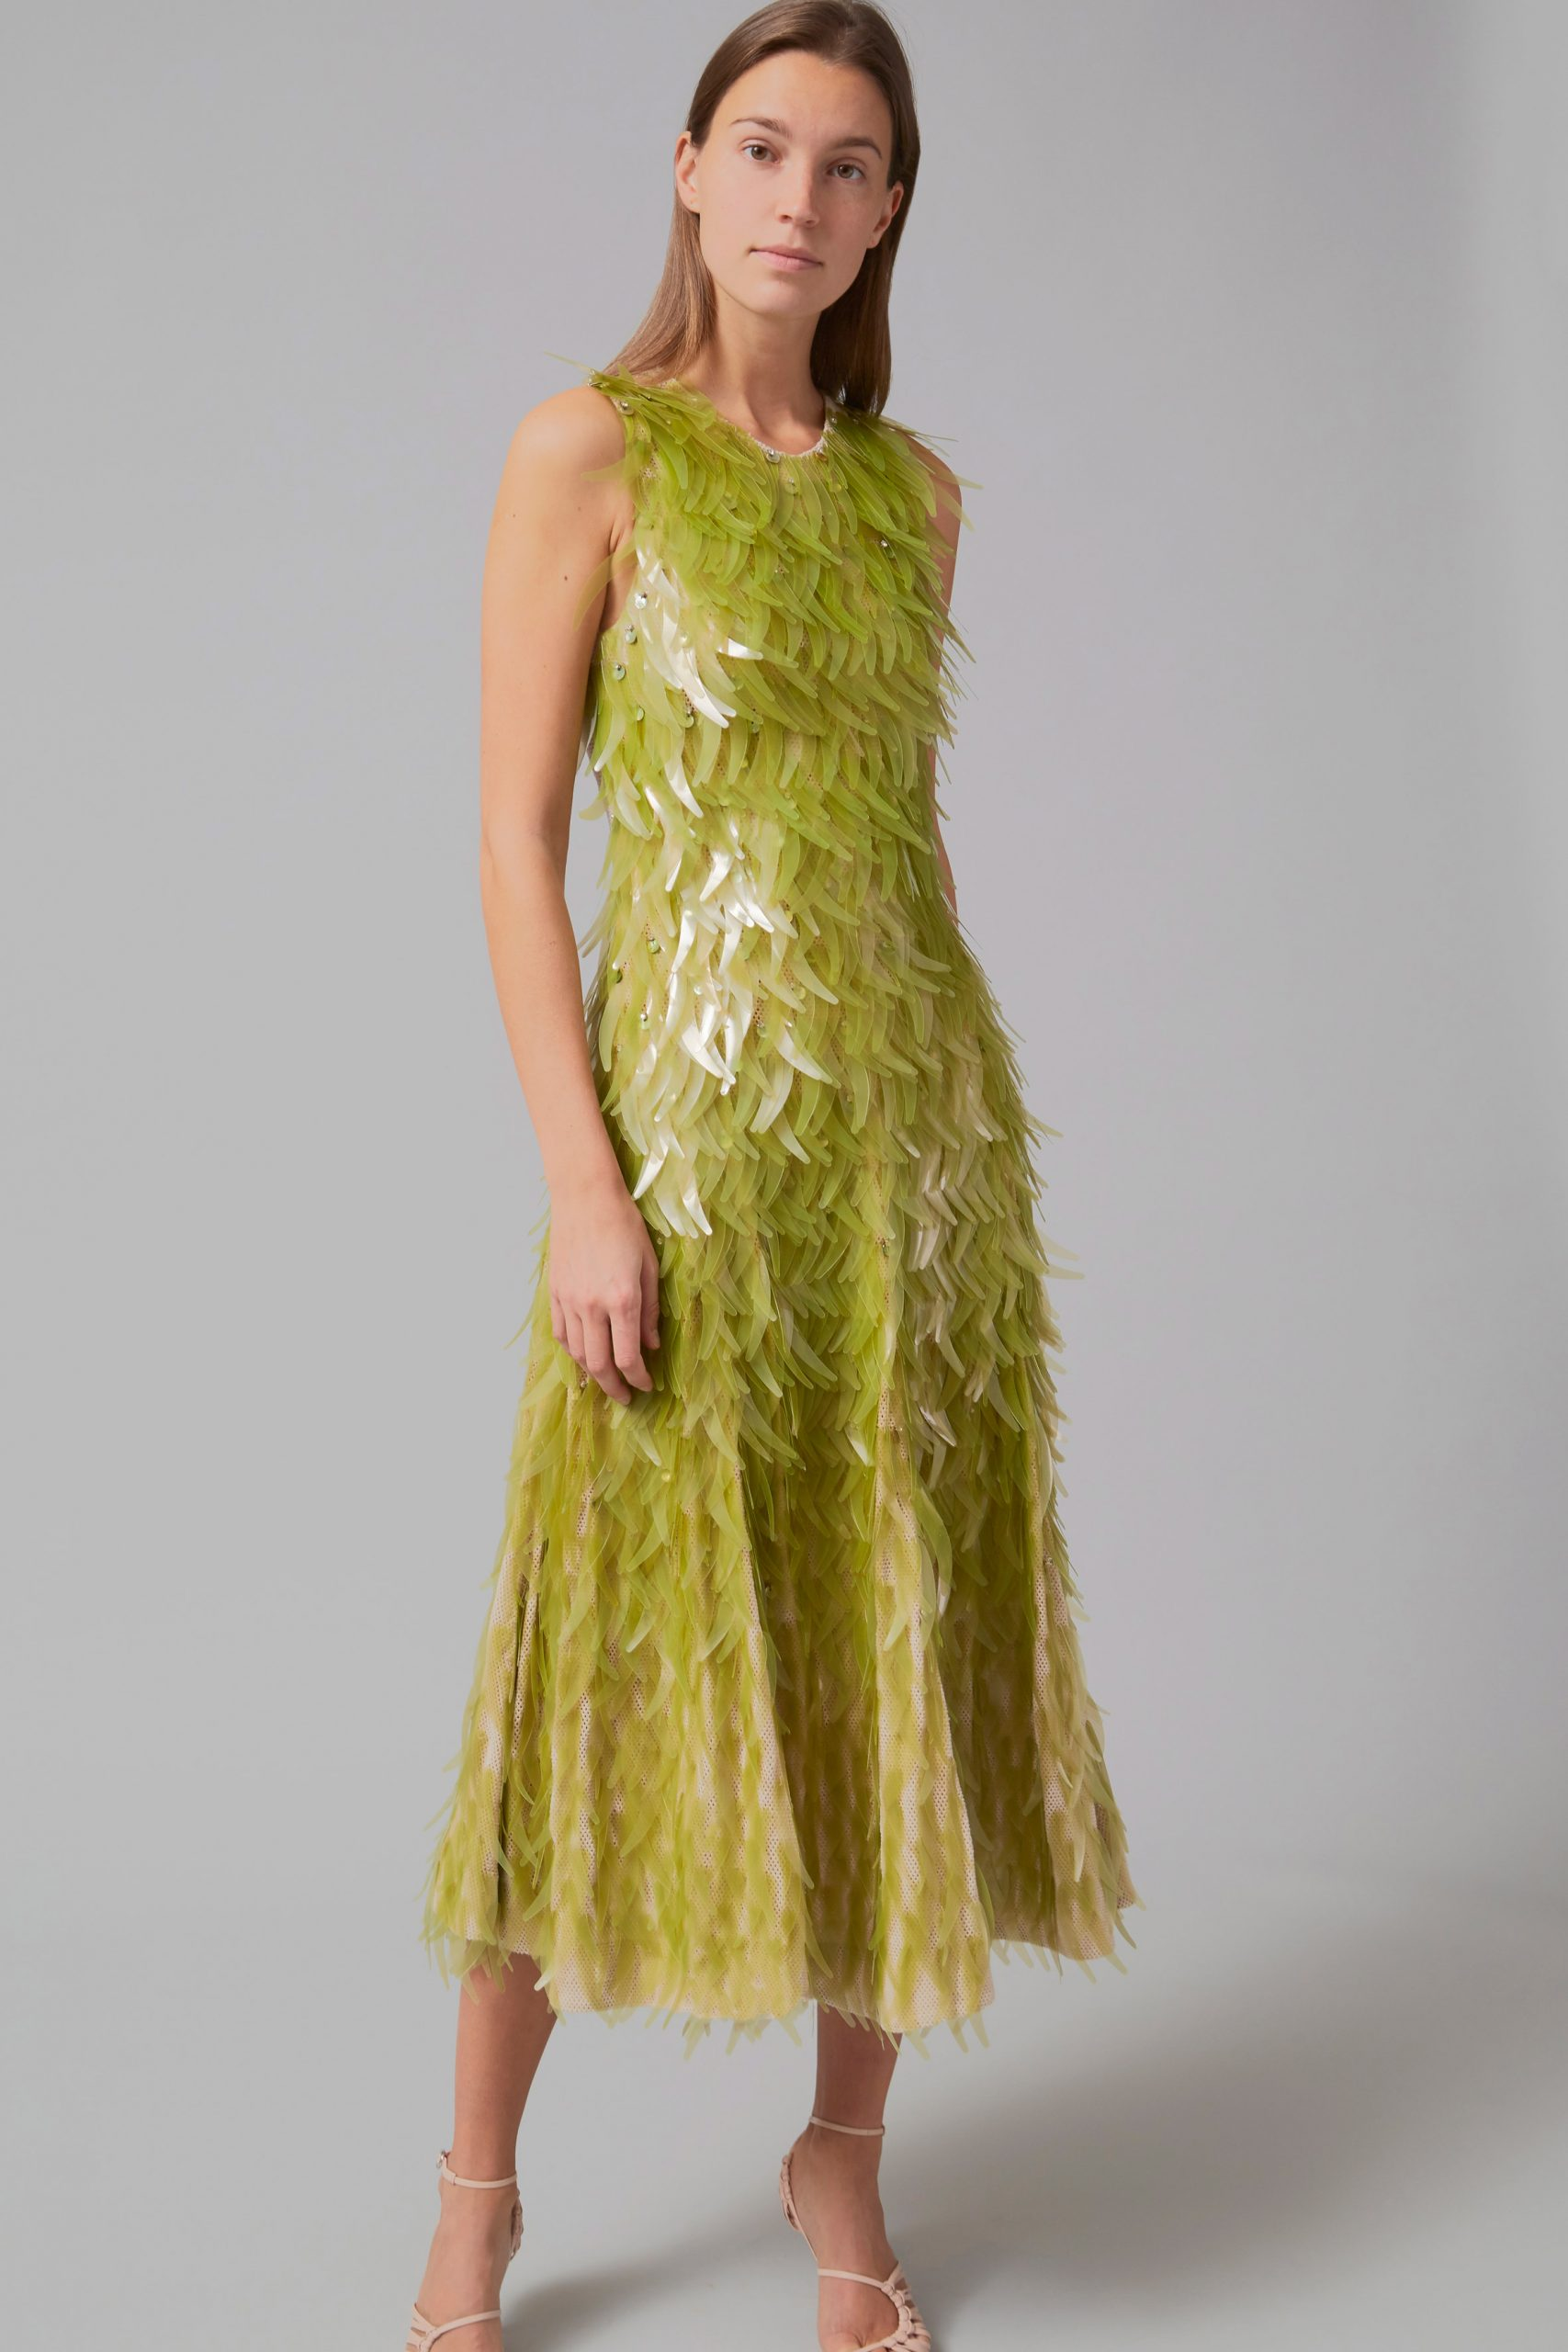 Bioplastic sequin dress by Phillip Lim and Charlotte McCurdy